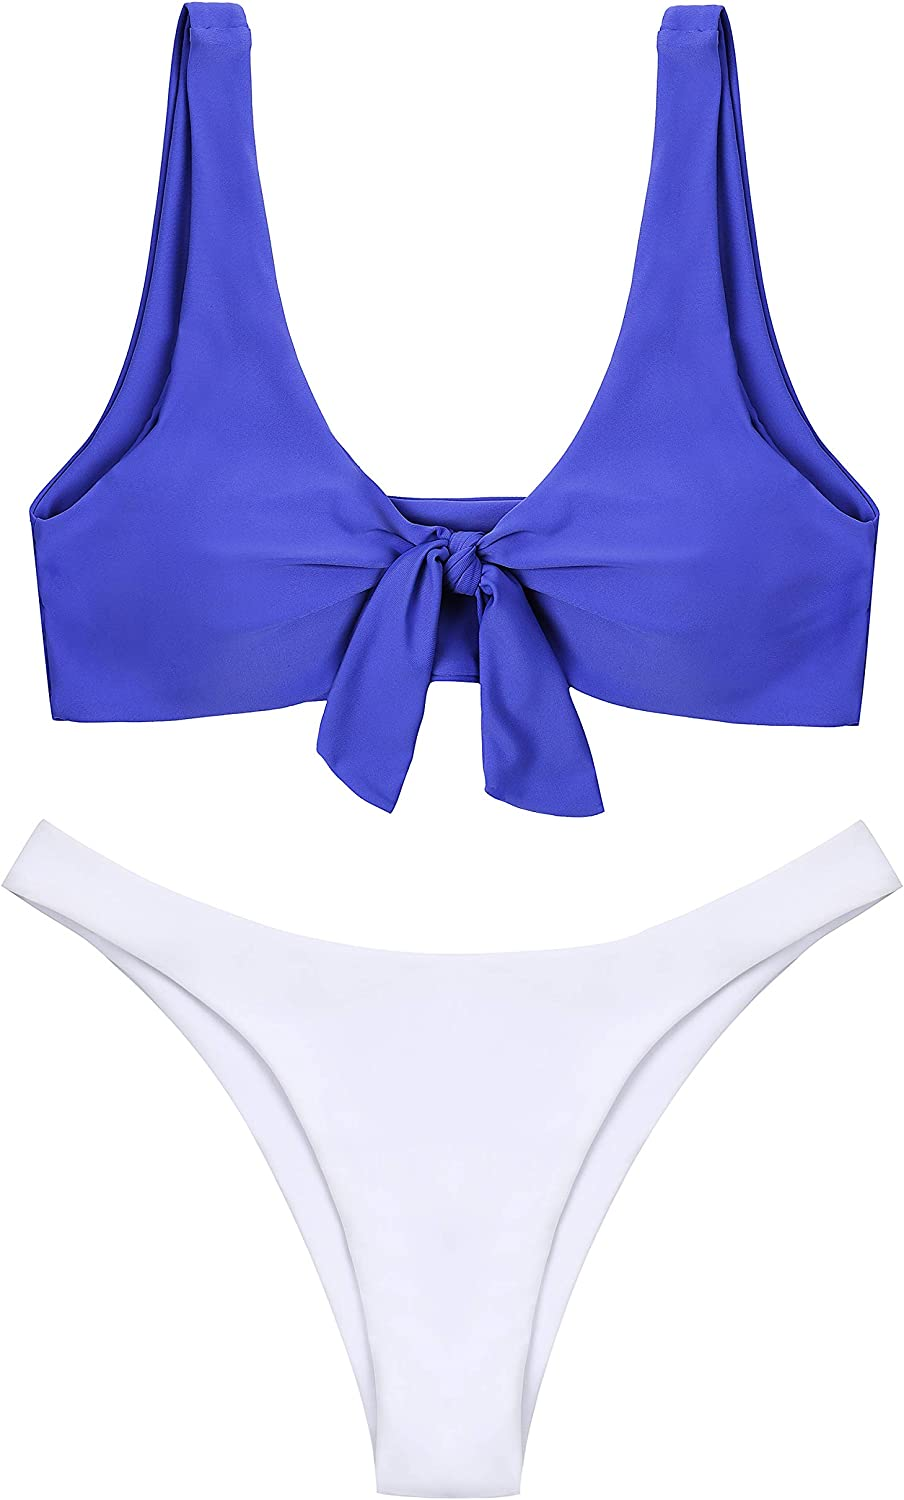 Lemonfish Women's Bikini Swimsuit Tie Knot Front Swimwear Set 2 Pieces Solid Bathing Suits